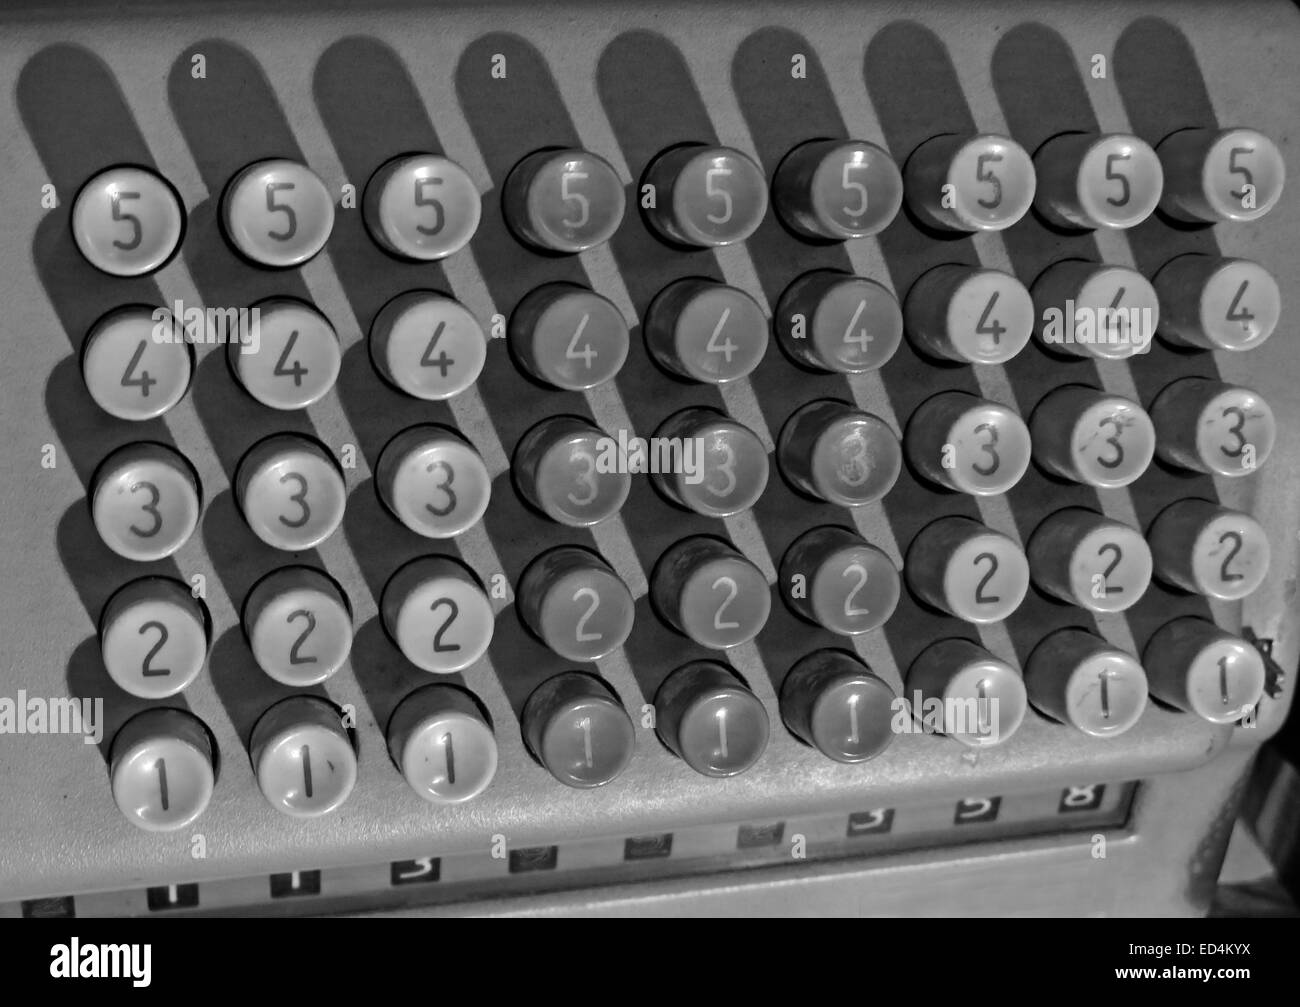 showing,numbered,button,keys,machine,antique,finance,counting,device,buttons,maths,math,mathematical,addition,adding,monochrome,black,and,white,Gotonysmith,Buy Pictures of,Buy Images Of